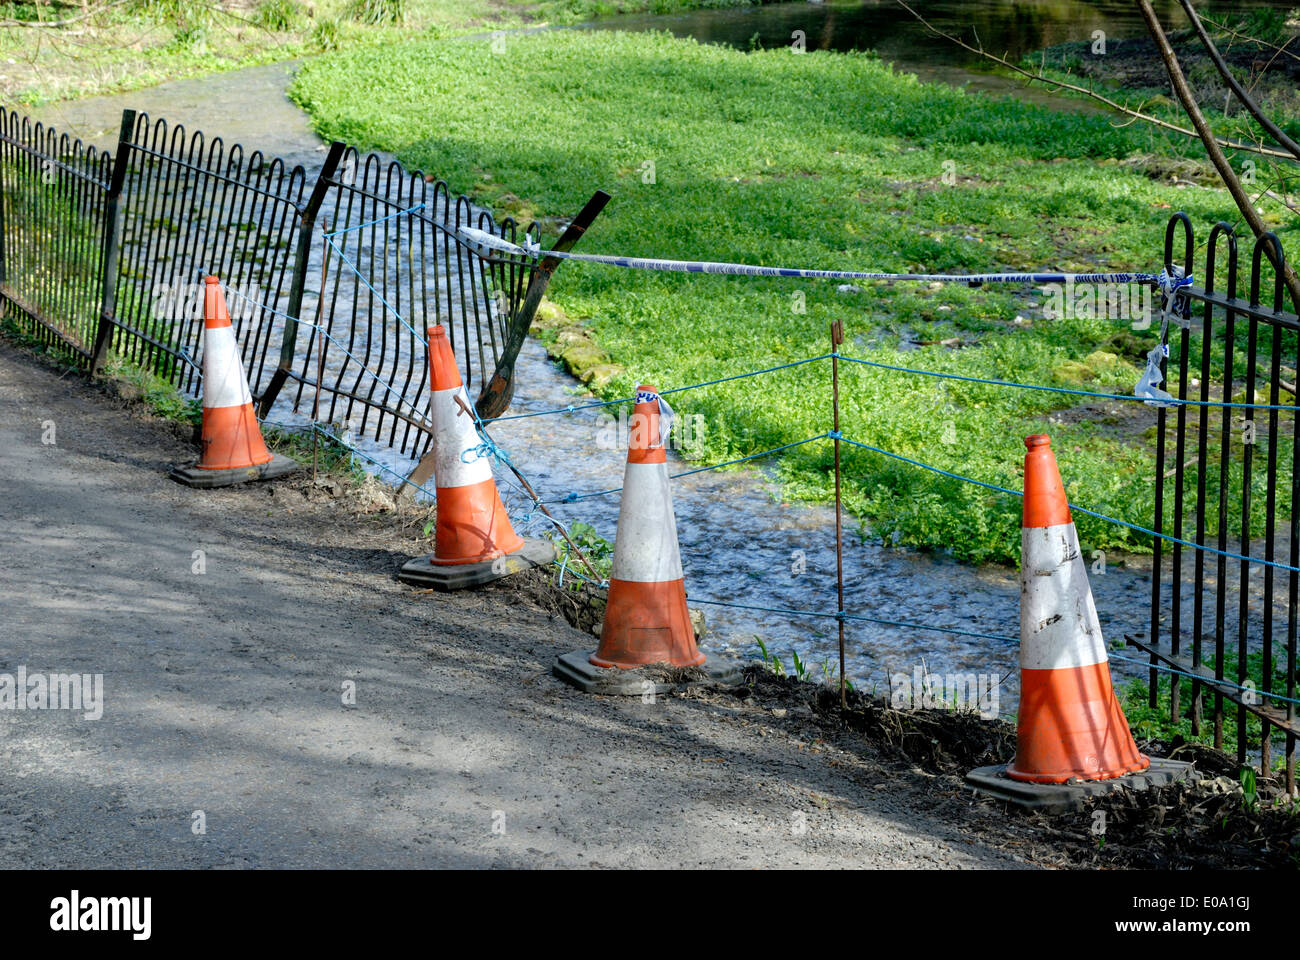 Traffic cones temporarily marking off damaged railings by a stream after a car accident. Loose Village, Kent - Stock Image